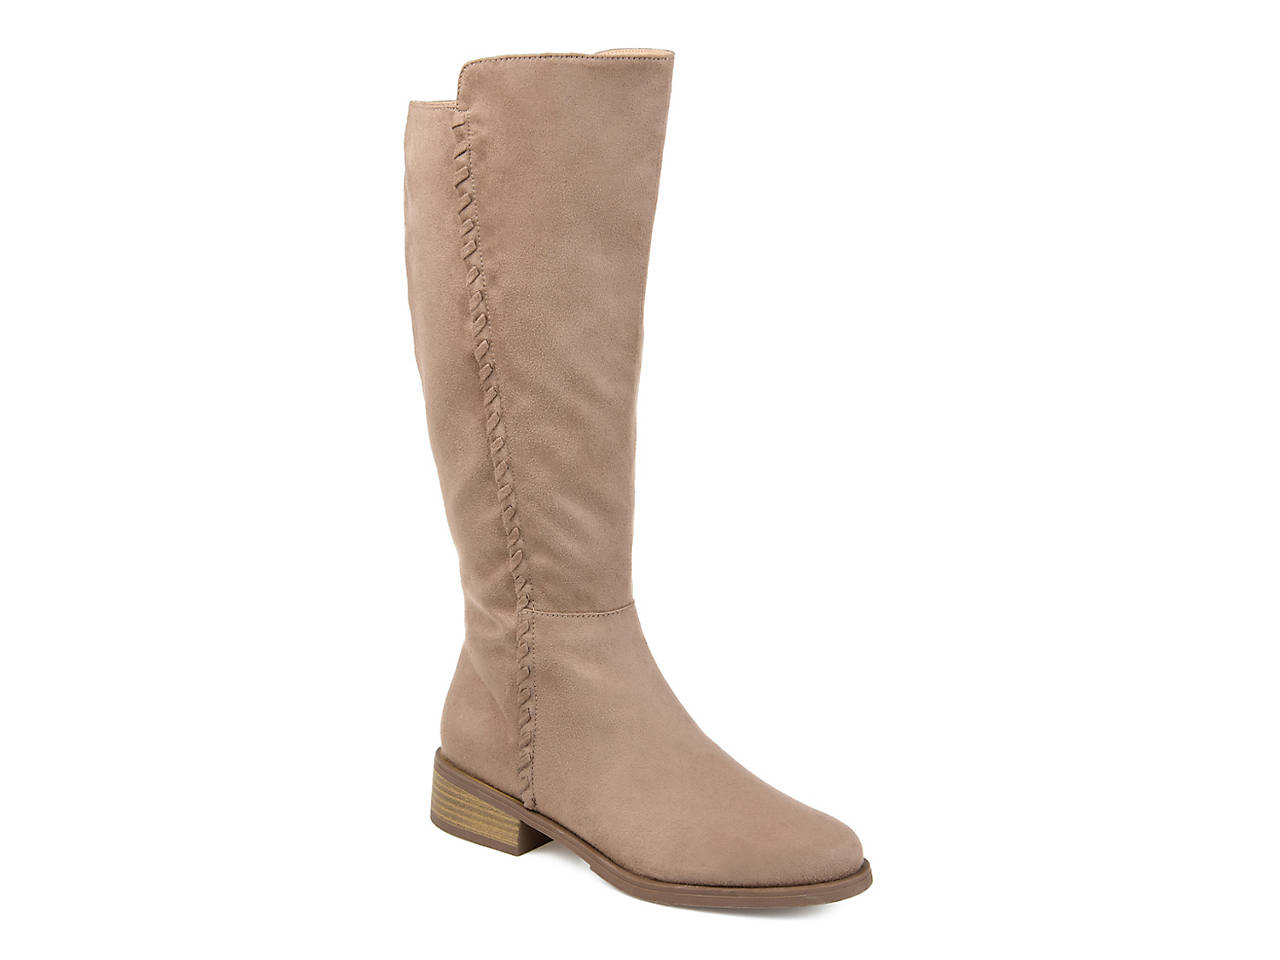 Journee Collection Comfort Womens Frenchy Regular Wide Calf Extra Wide Calf Boot